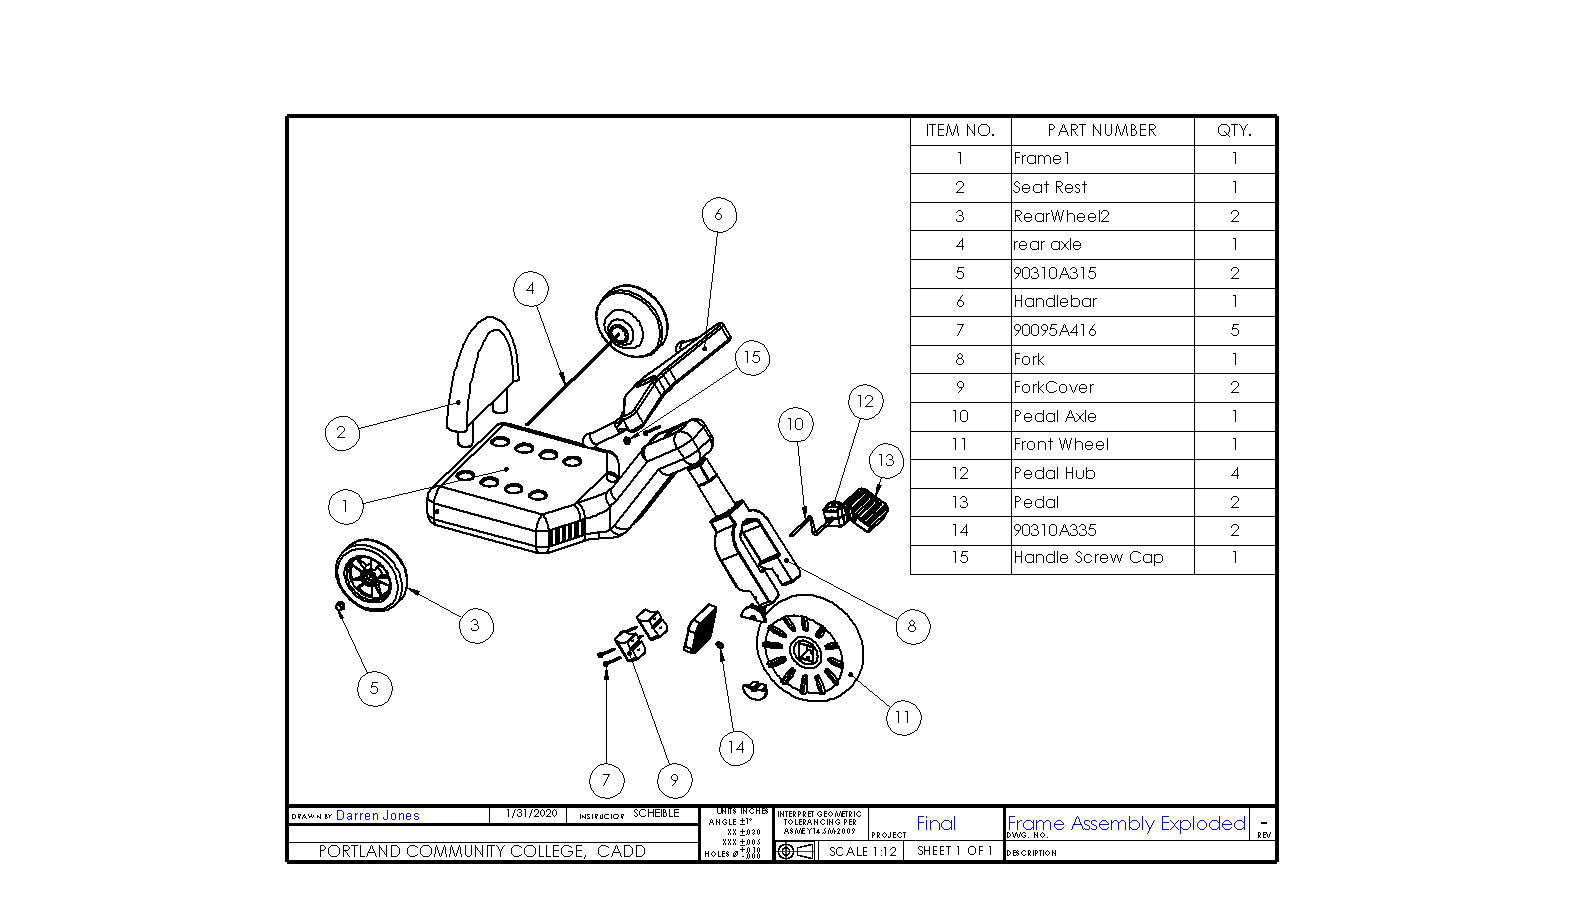 power wheel exploded view